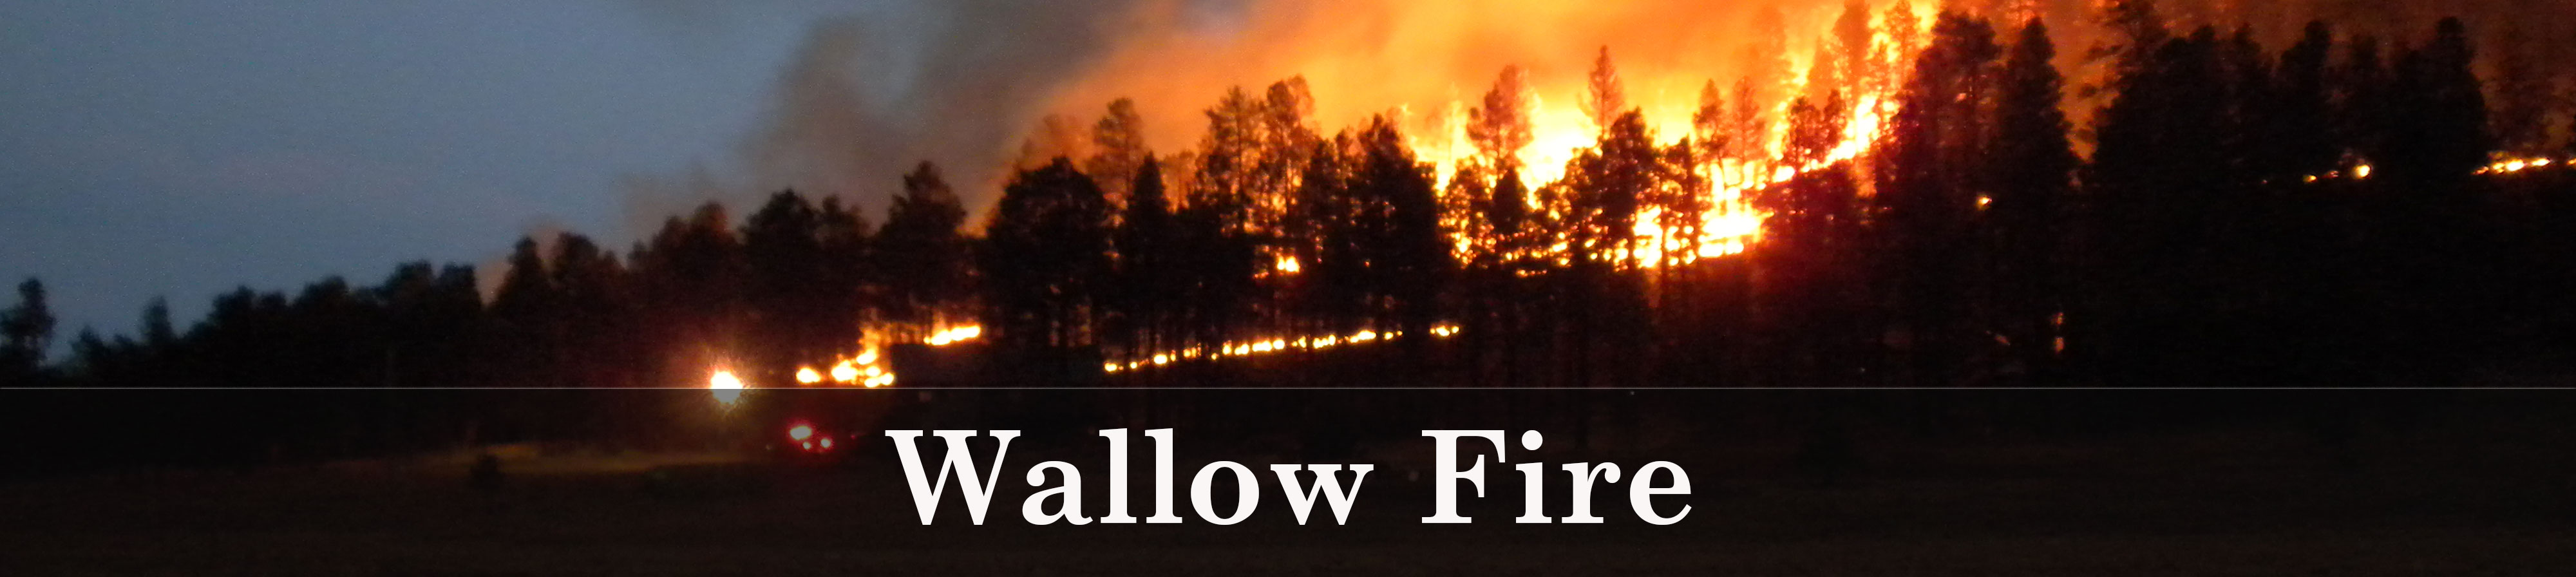 Wallow Fire